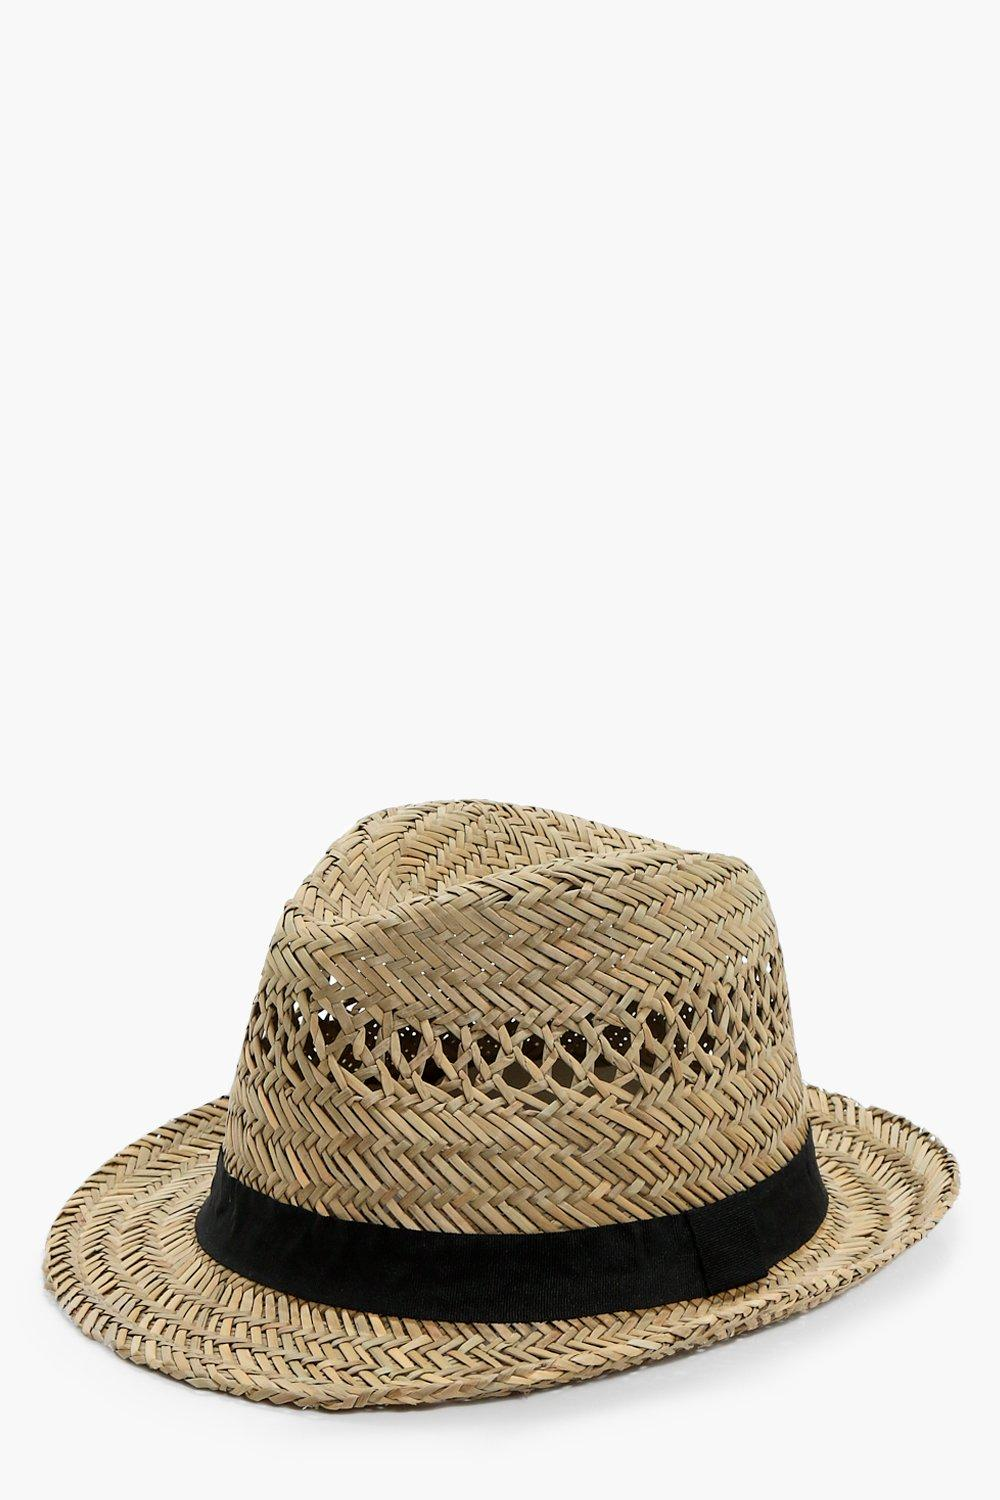 Gros Grain Band Straw Trilby Hat - natural - Kate